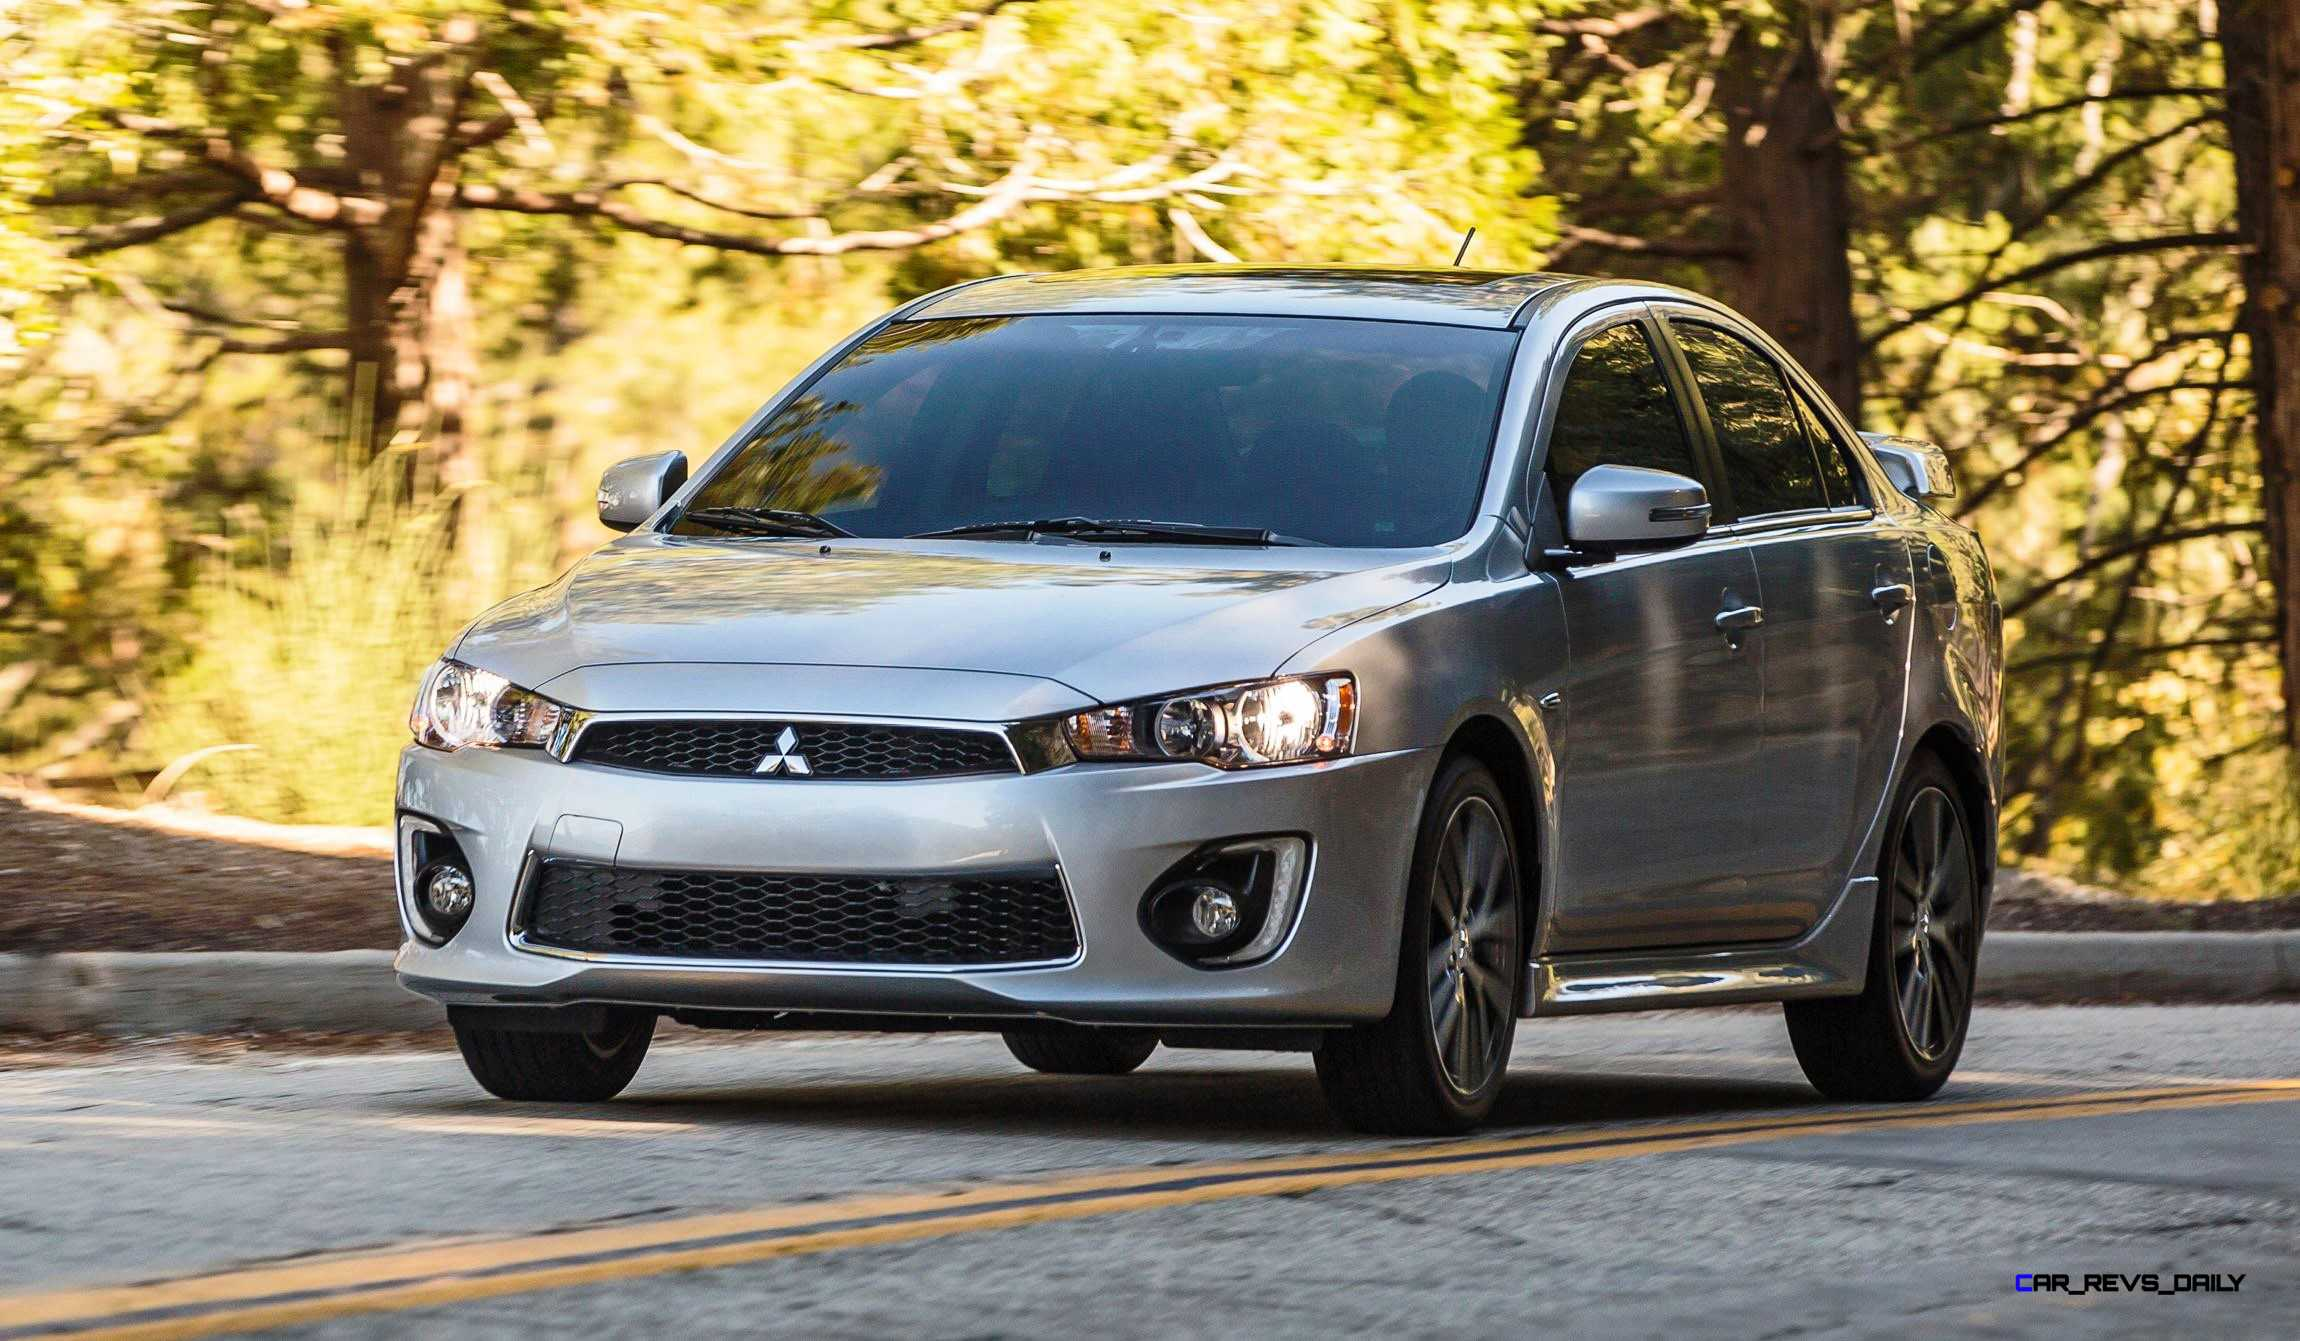 Mitsubishi Lancer Door Sedan Es Auto Tail Light M moreover Mitsubishi Mirage G Sub pact Sedan Launched In New York together with Toyota Marx X Import Interior Steering Wheel furthermore Body Color in addition Mitsubishi Lancer Evolution X Mitsubishi Lancer Jdm. on new 2016 mitsubishi lancer